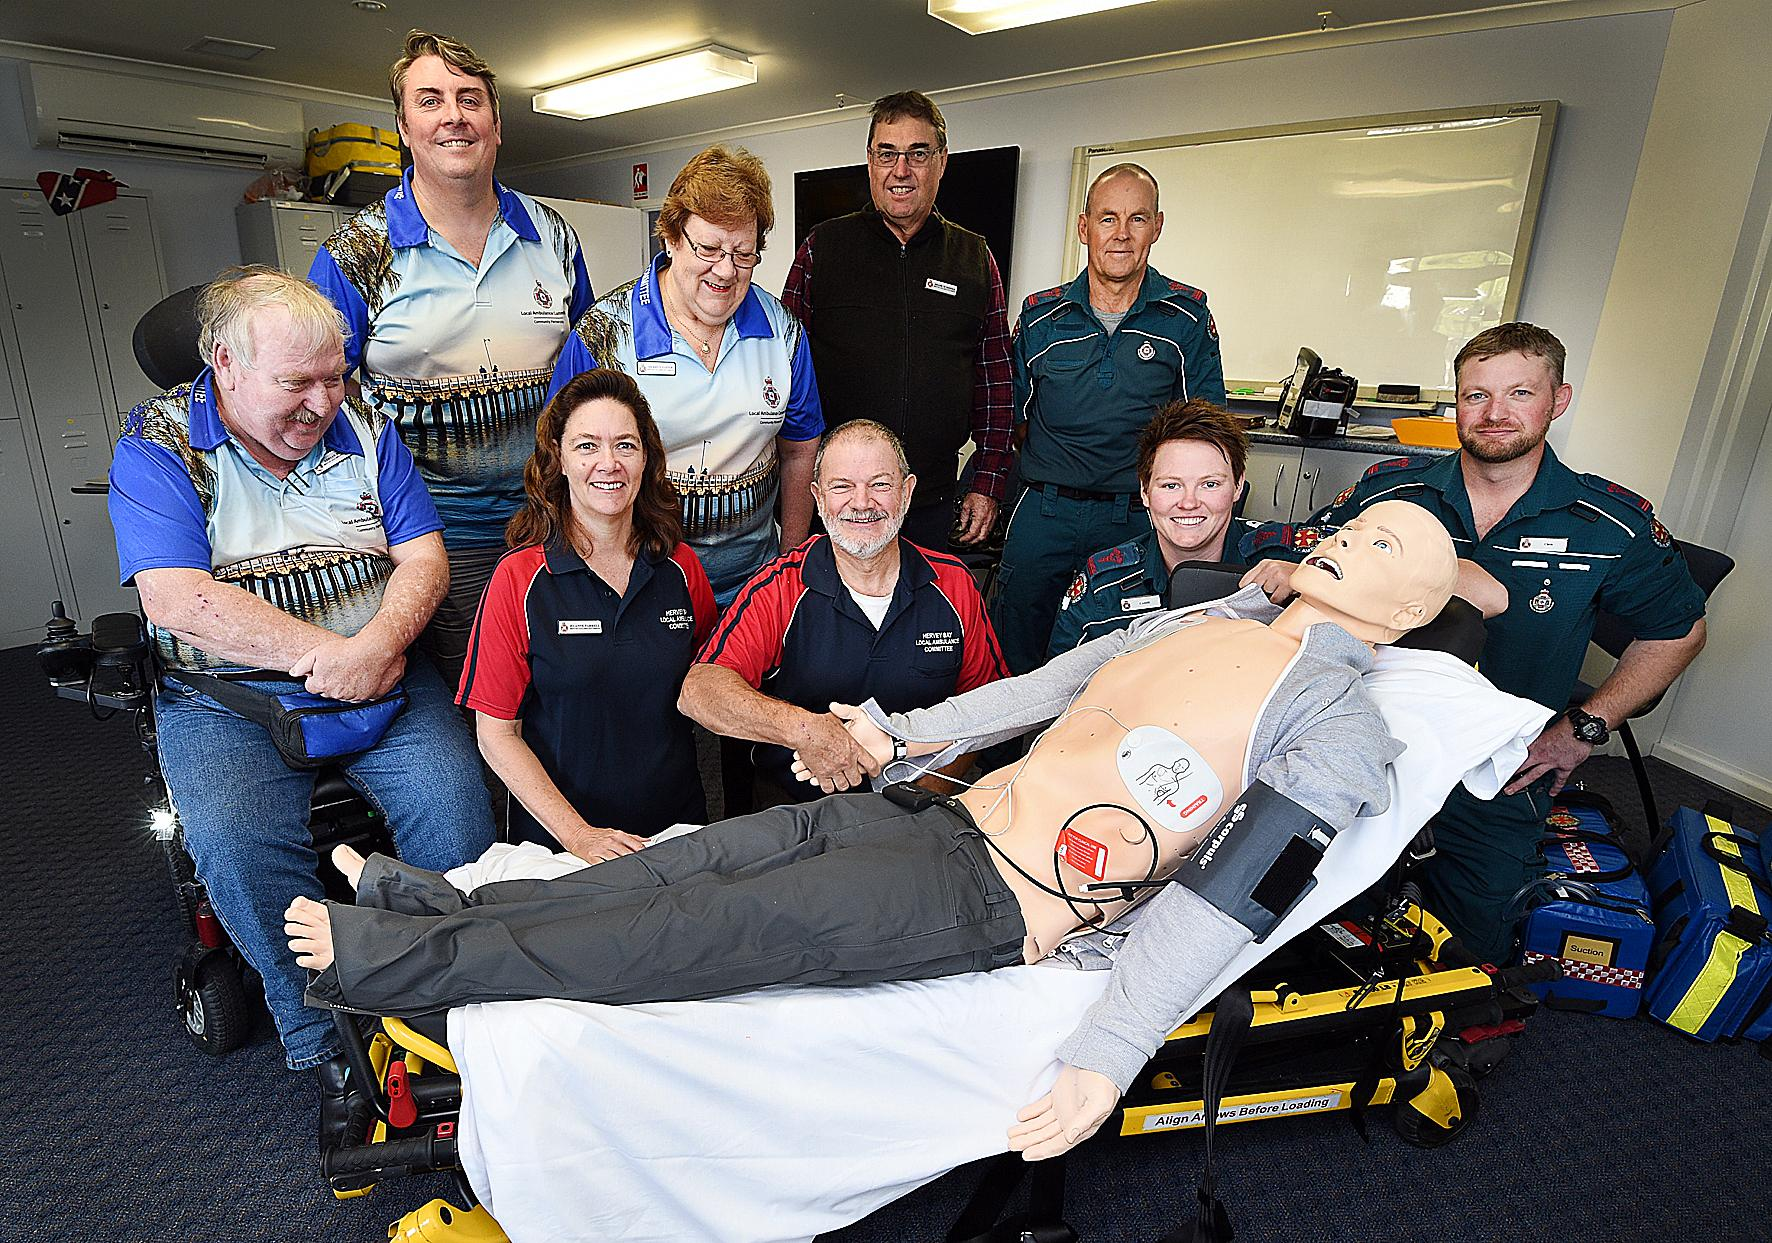 Hervey Bay Local Ambulance Committee with their new mannequin Kev - Front (L) Adrian Doyle, Jo-Anne and Ian Farrell, Cassie Taylor and Chris Giltrap. Back (L) Wayne Frecklington, Merryn Napier, Shane Schiffke and Mark Black.